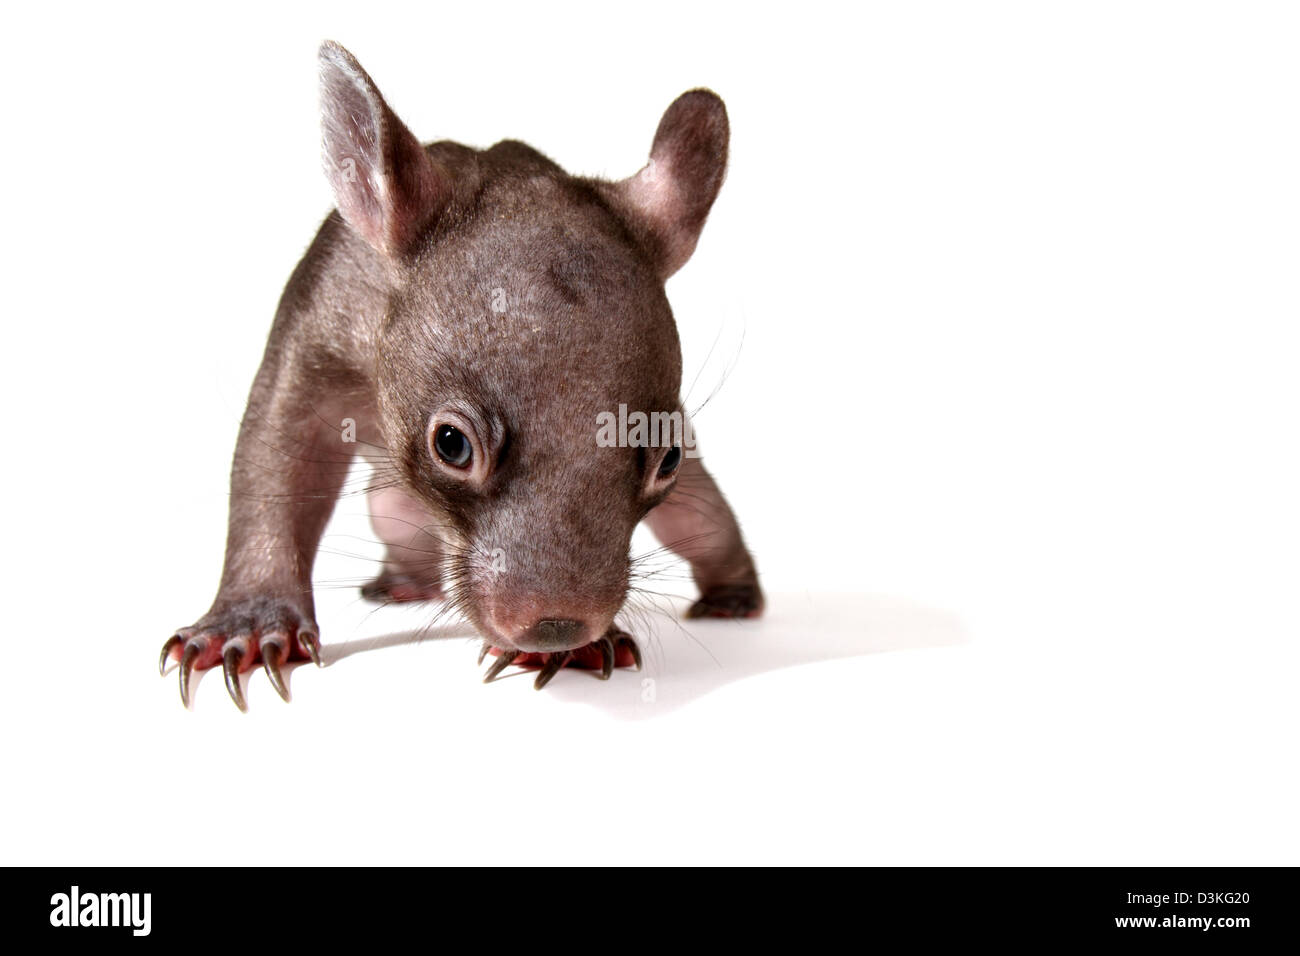 common wombat vombatus ursinus juvenile photographed in a studio with white background ready for cut-out Stock Photo